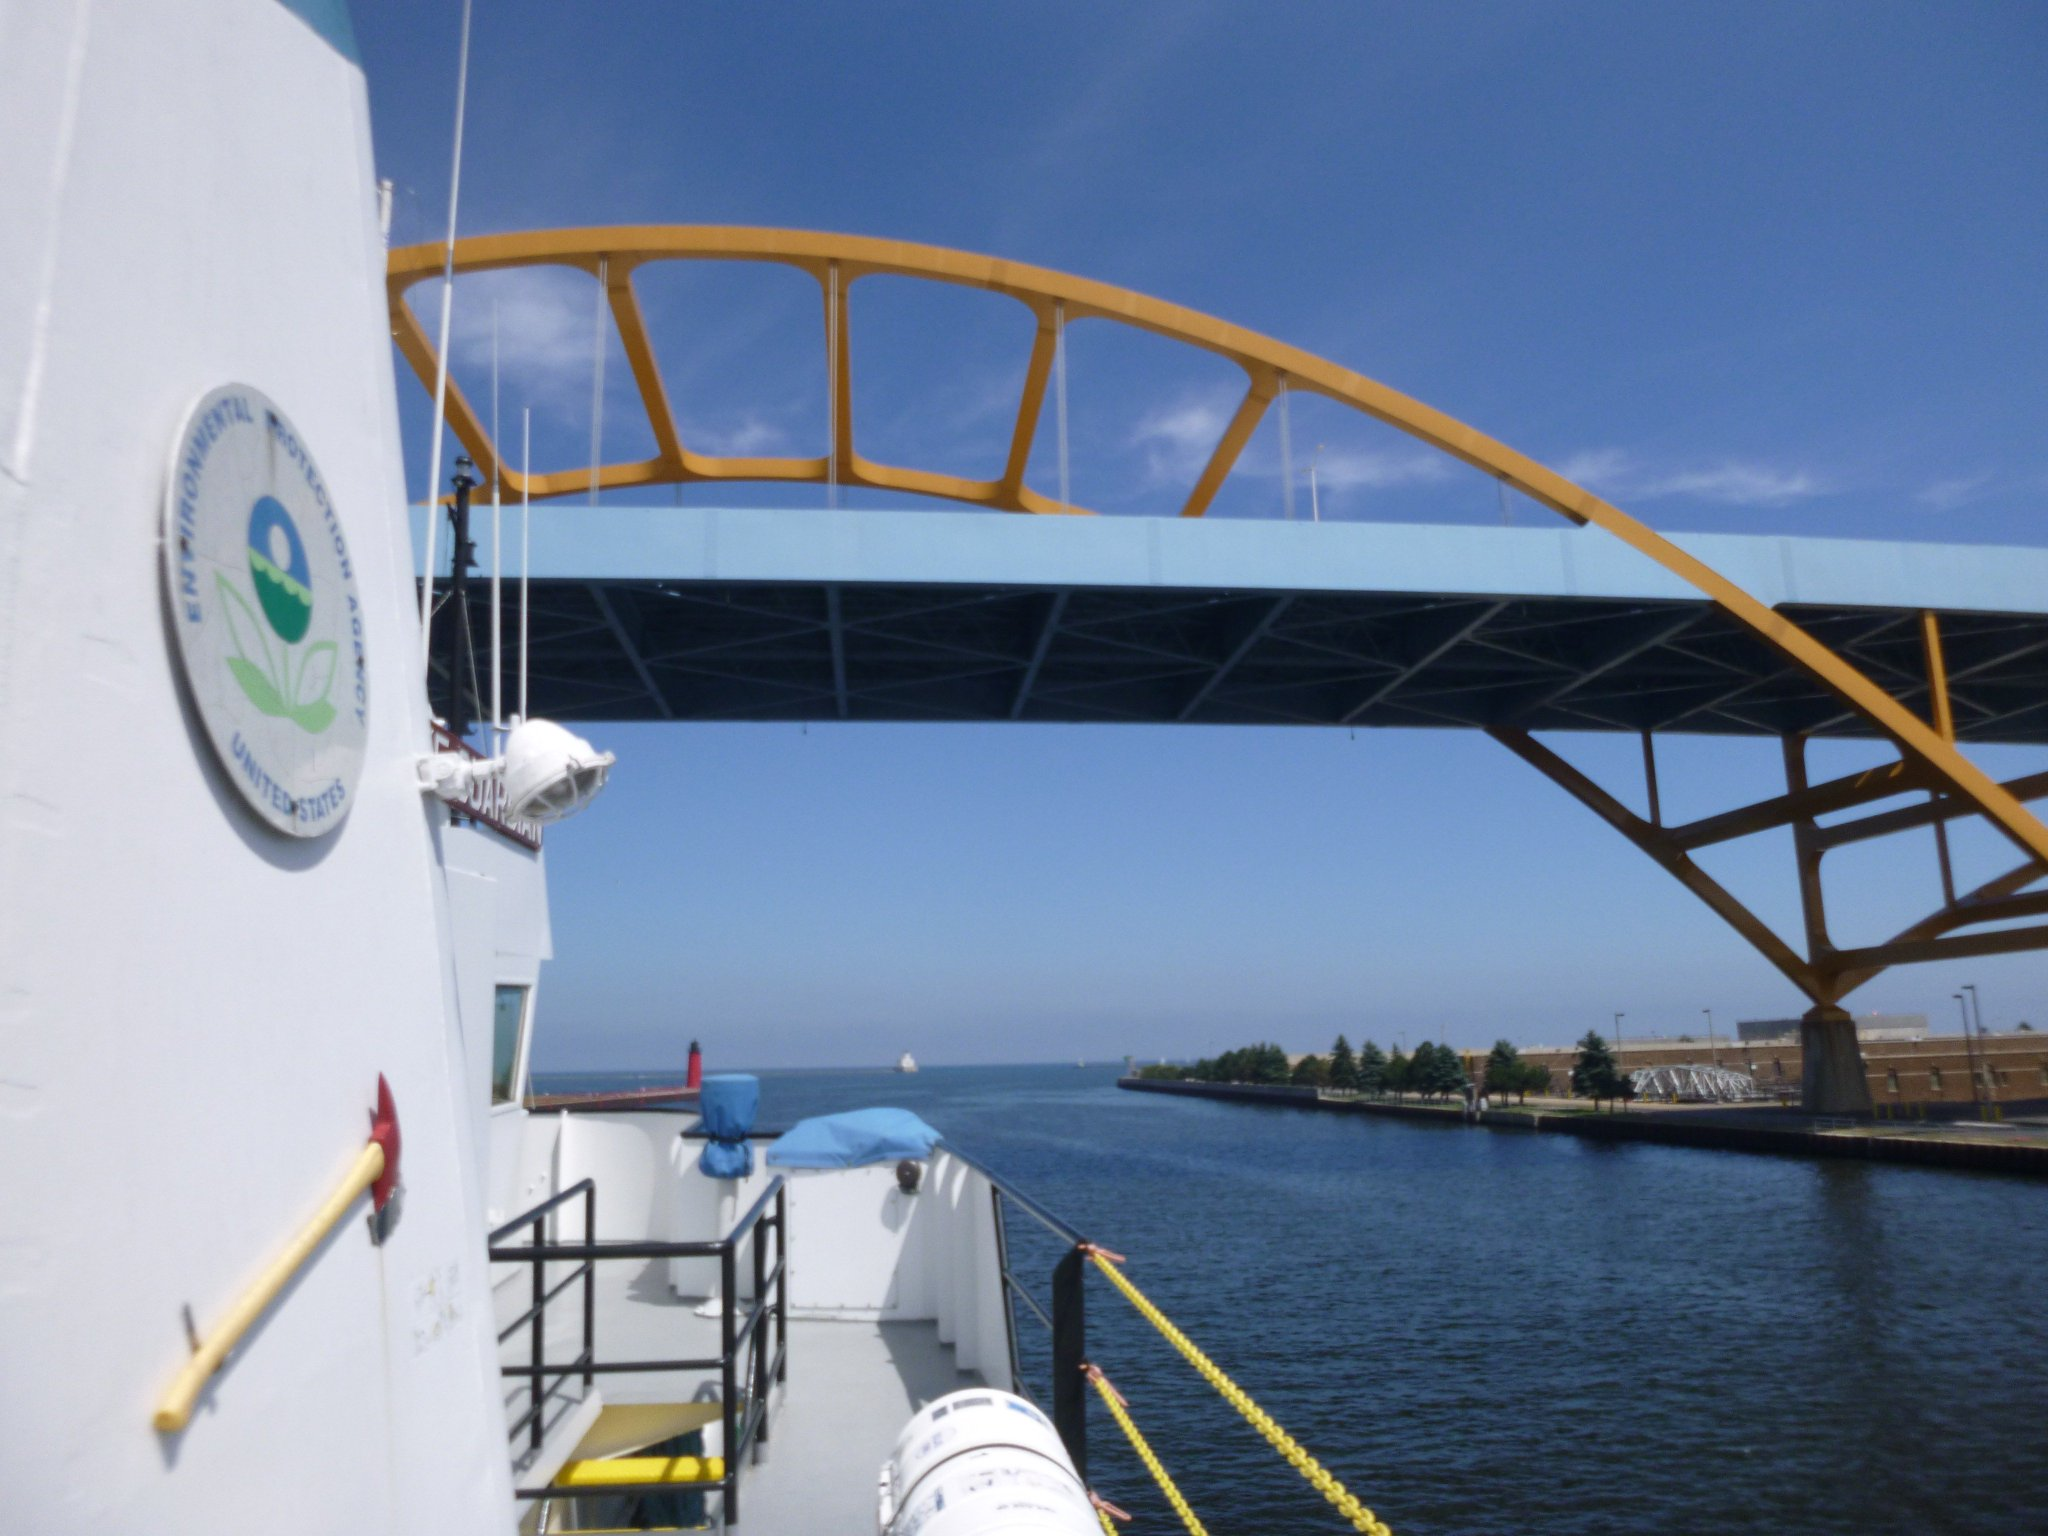 Goodbye #Milwaukee! The annual summer tour de grand lacs commences with #LakeMichigan. #SummerSurvey2016 #Gr8Lakes https://t.co/TnvdHytc2x